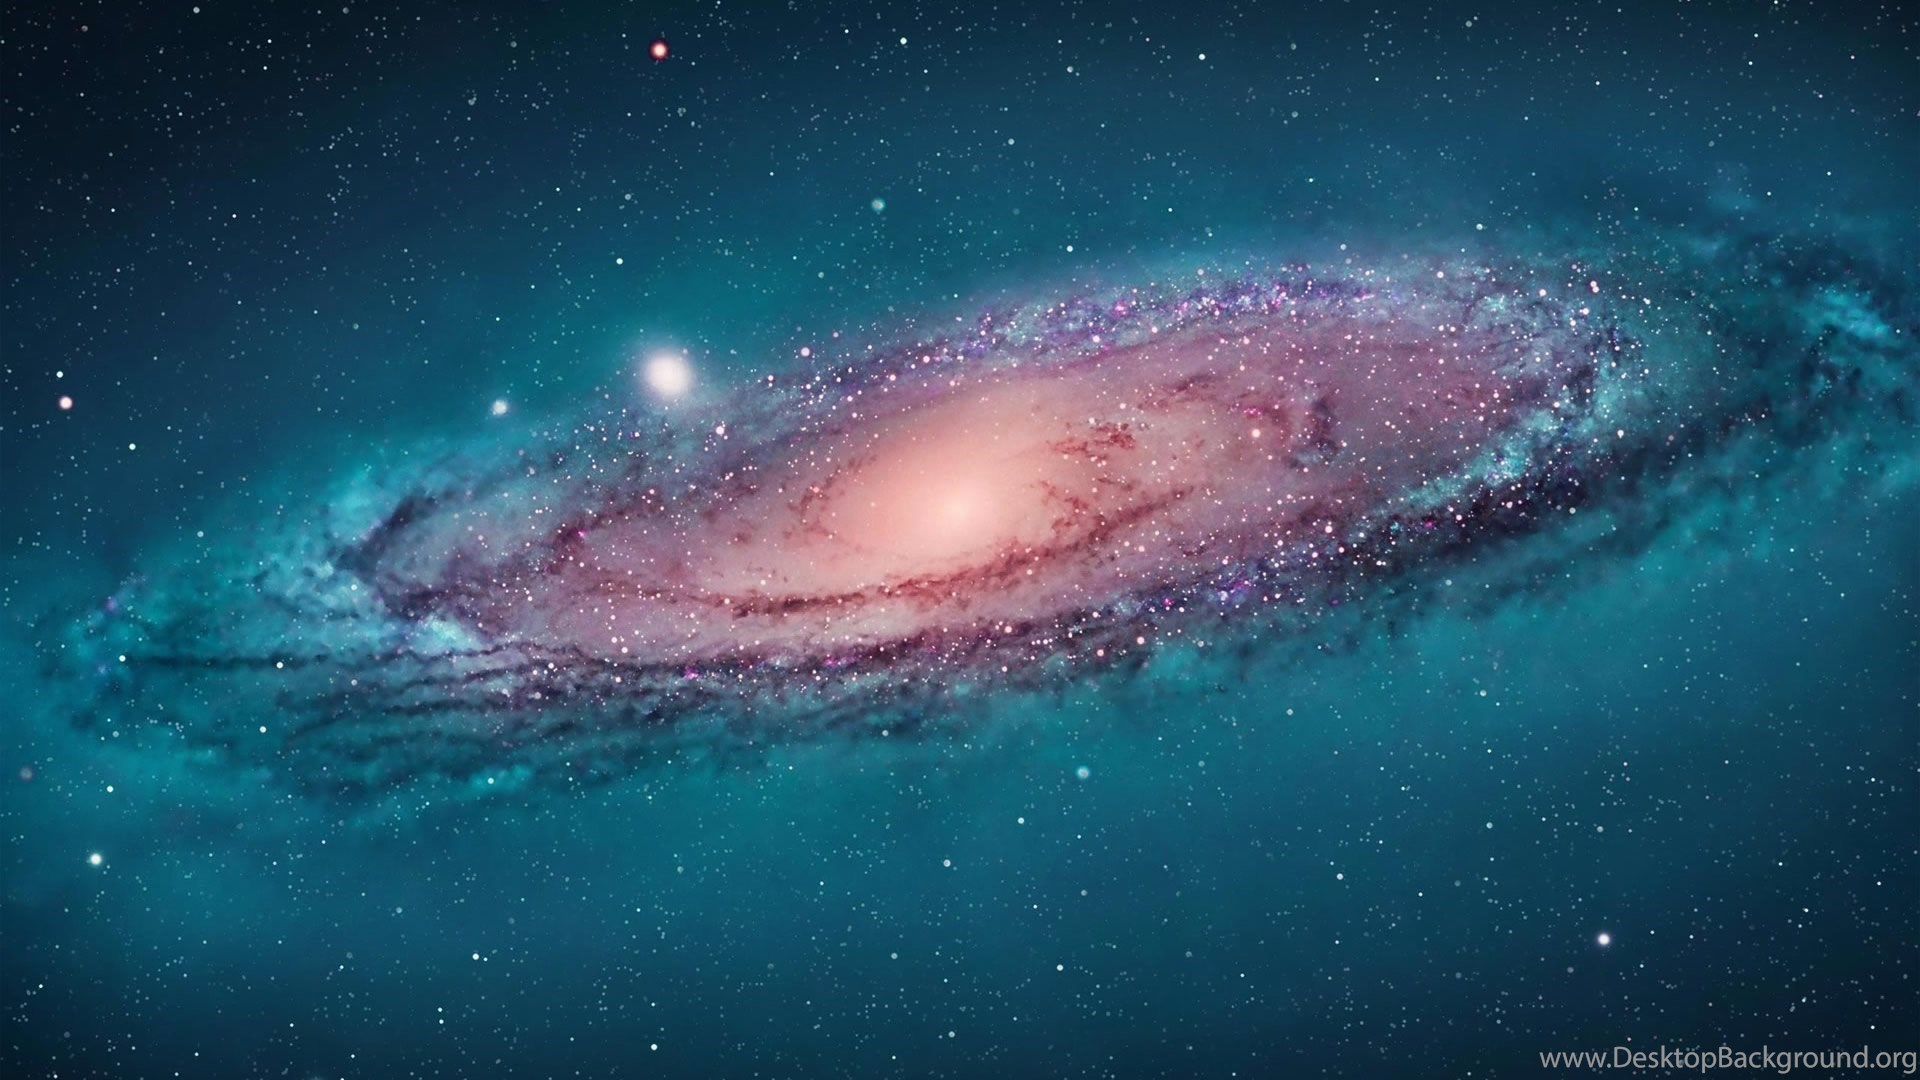 Galaxy Space Wallpaper For Android: Galaxy And Space Windows 10 Wallpapers Desktop